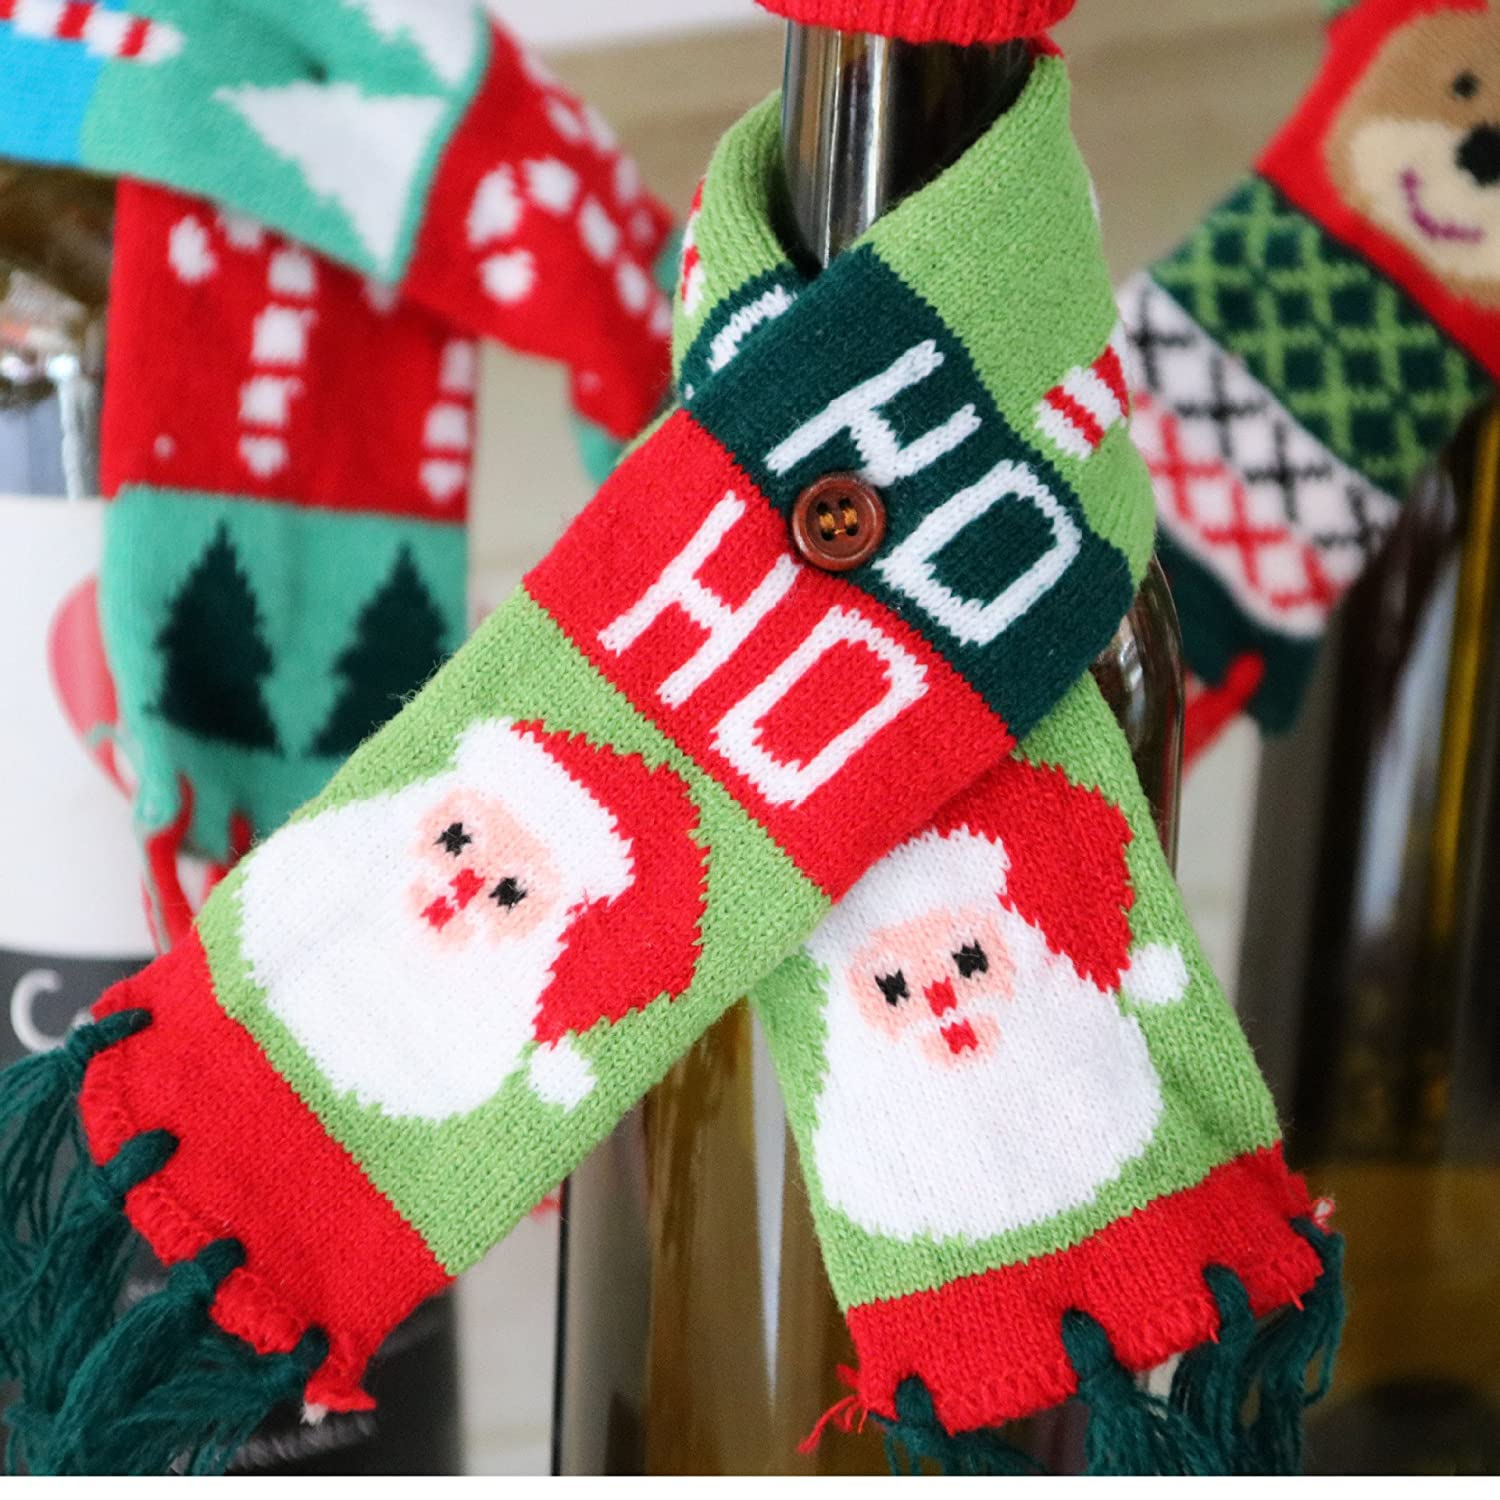 Amazoncom Christmas Wine Bottle Cover Decorations Gifts [Santa Claus +